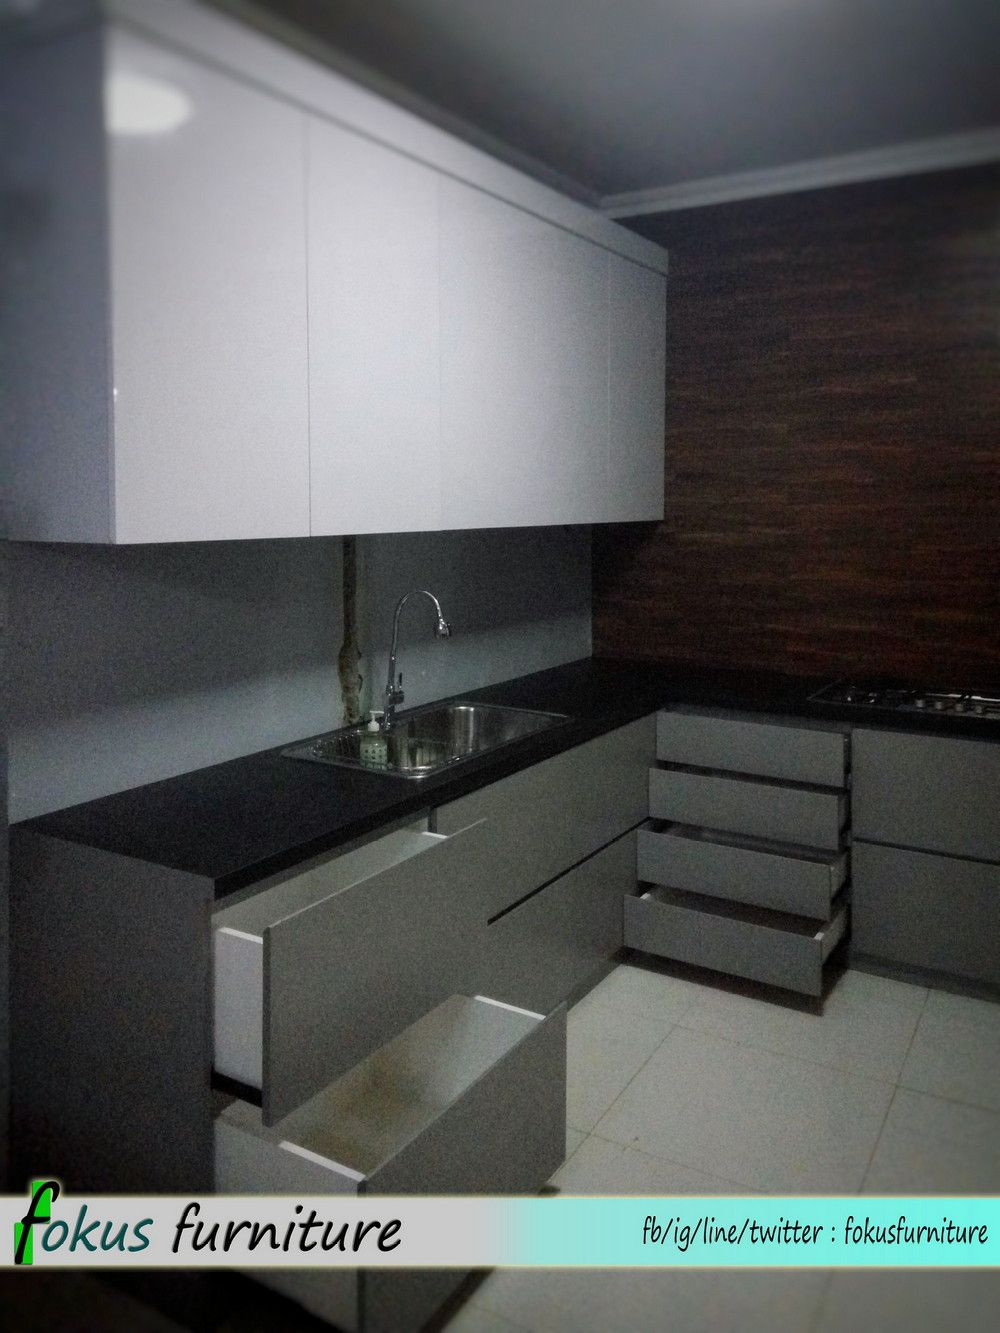 Kitchen Set Tanpa Handle Interior Dapur Minimalis Desain Dapur